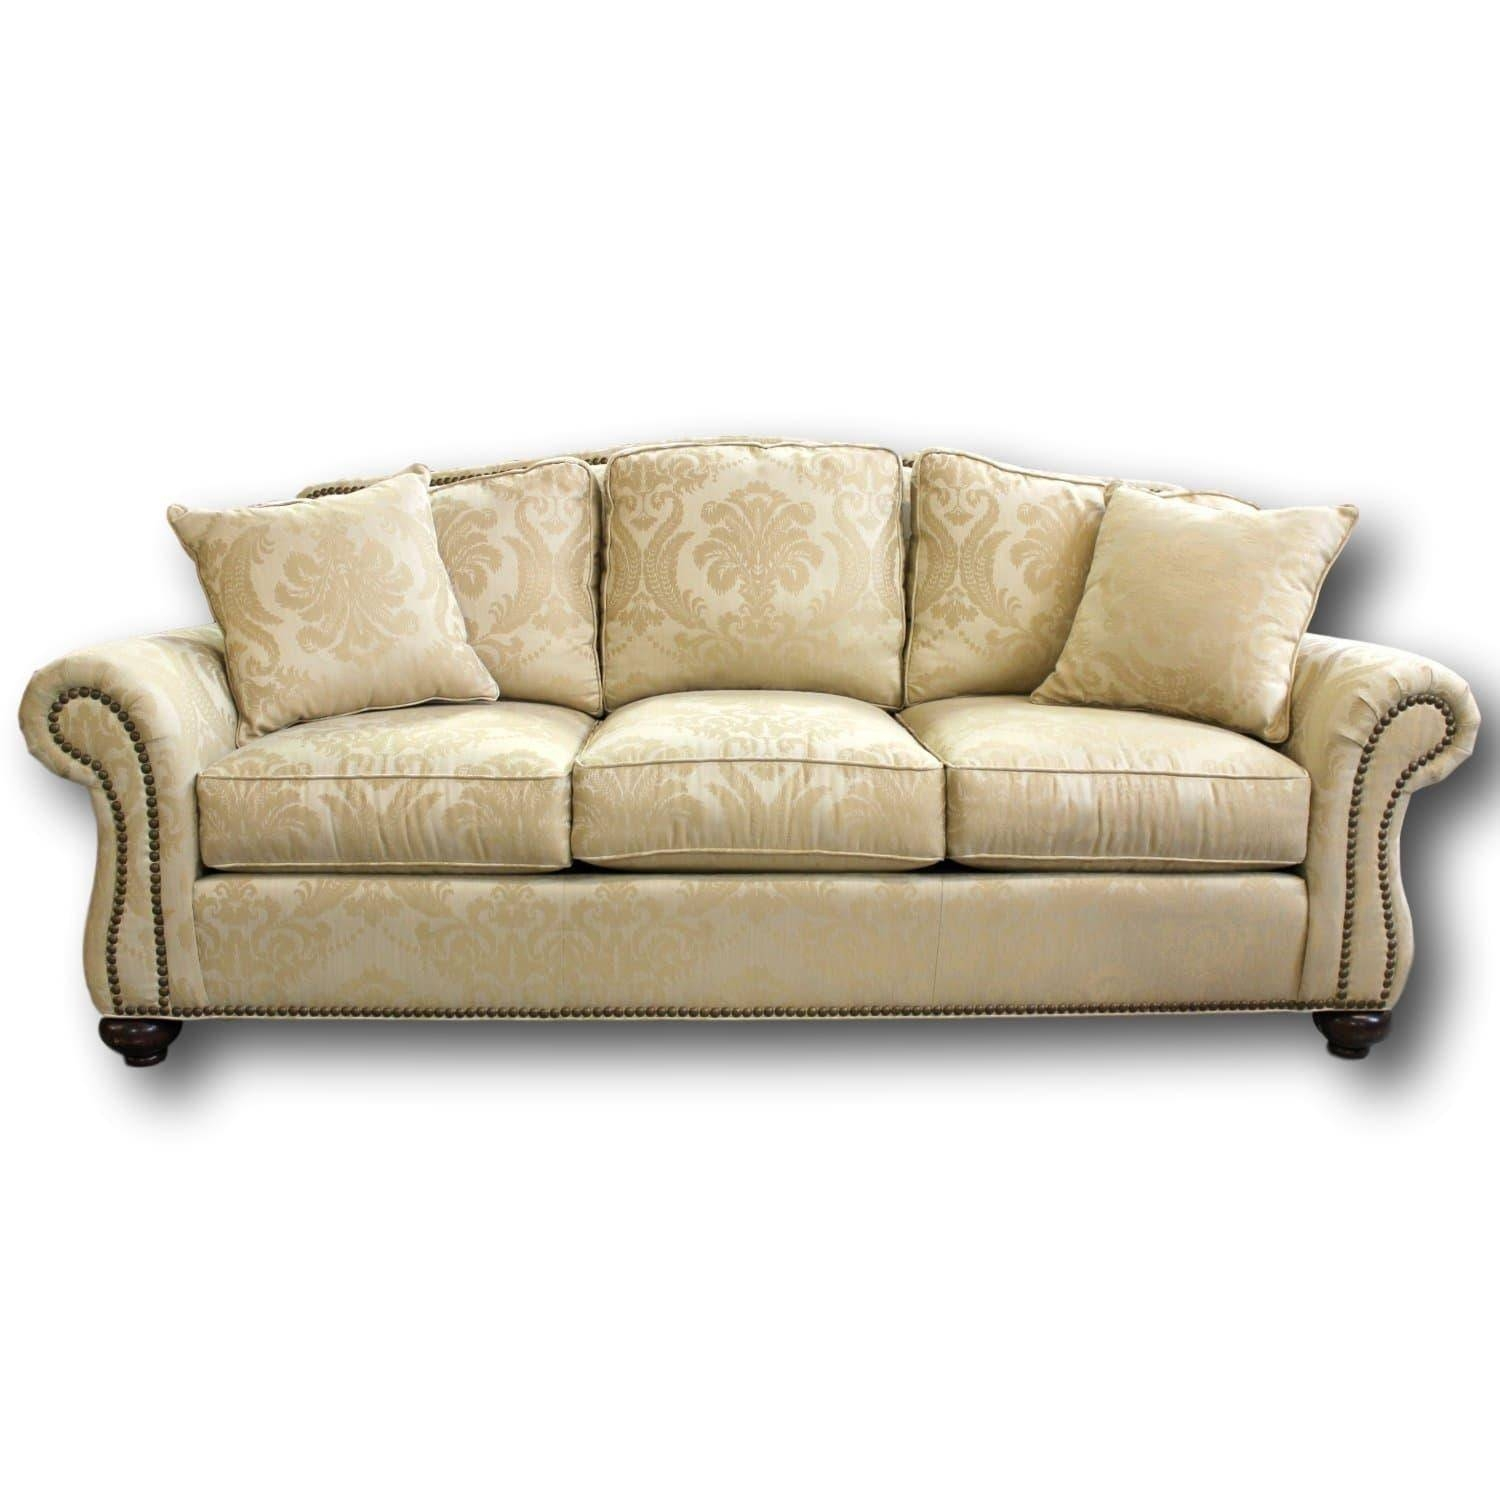 Sofa Ideas: Allen White Sofas (Explore #17 Of 20 Photos) with regard to Alan White Sofas (Image 14 of 15)